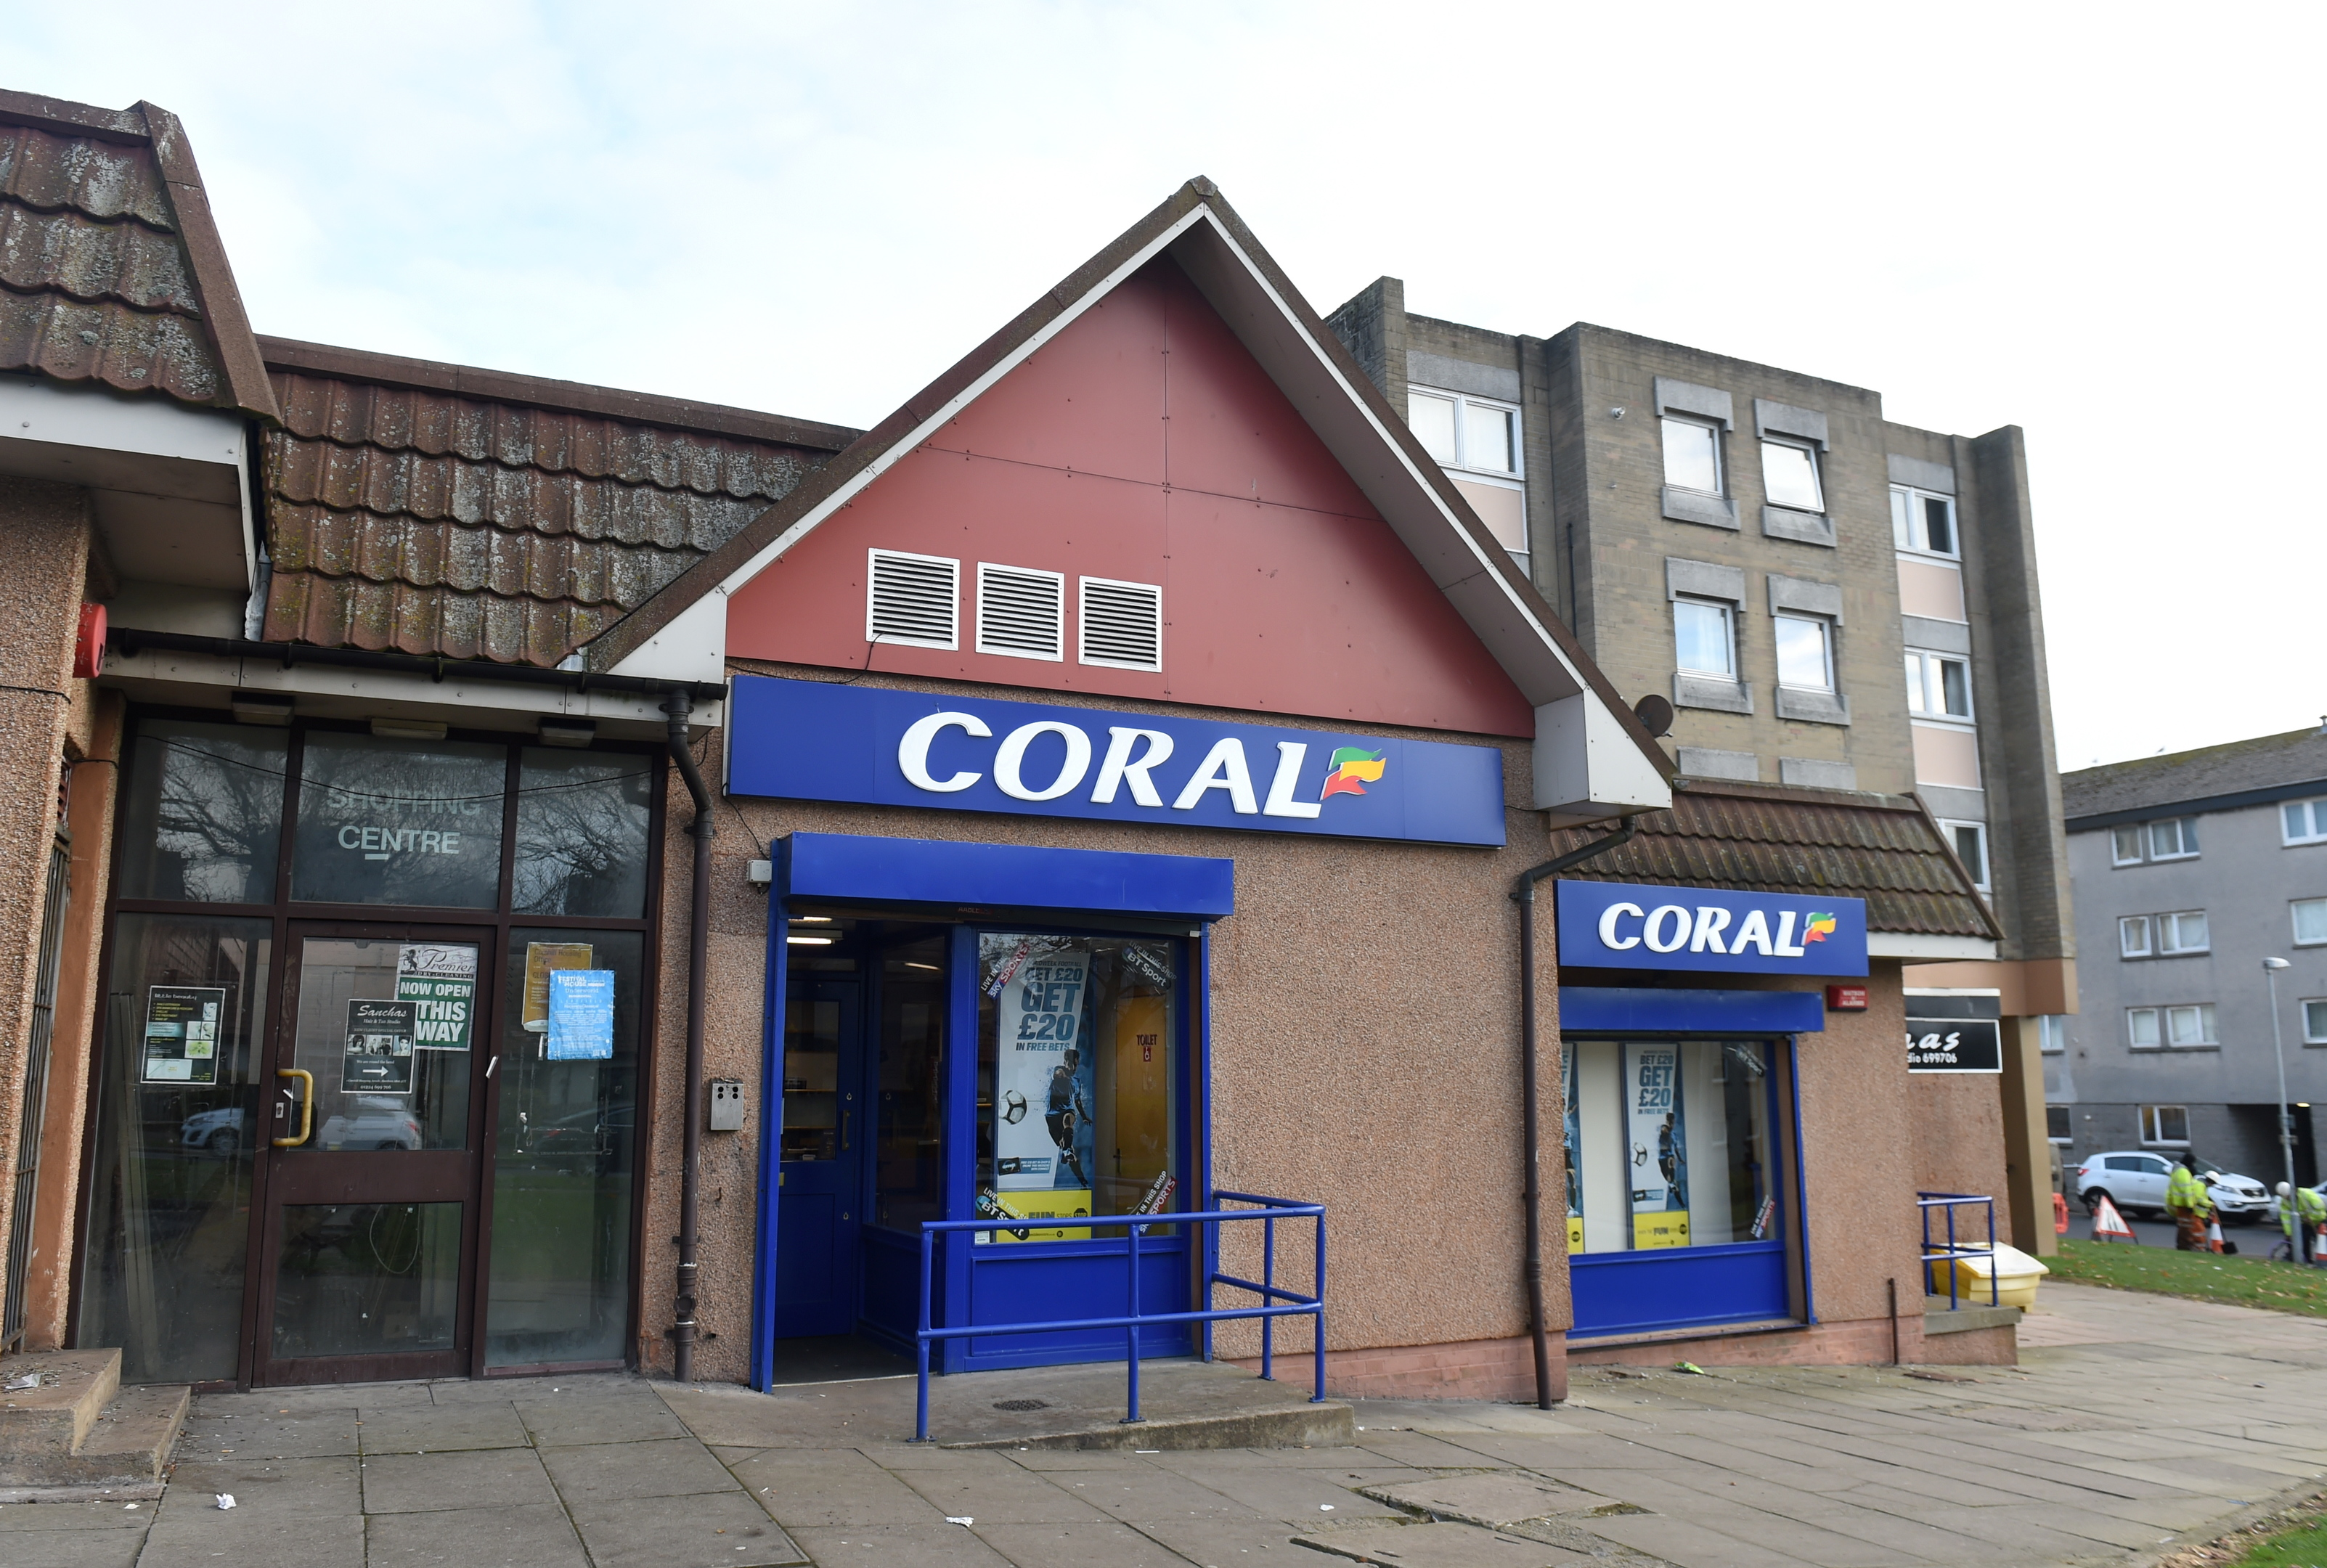 The pair stole £2,800 from a branch of Coral Bookmakers at the Cornhill Shopping Arcade in Aberdeen in October 2016